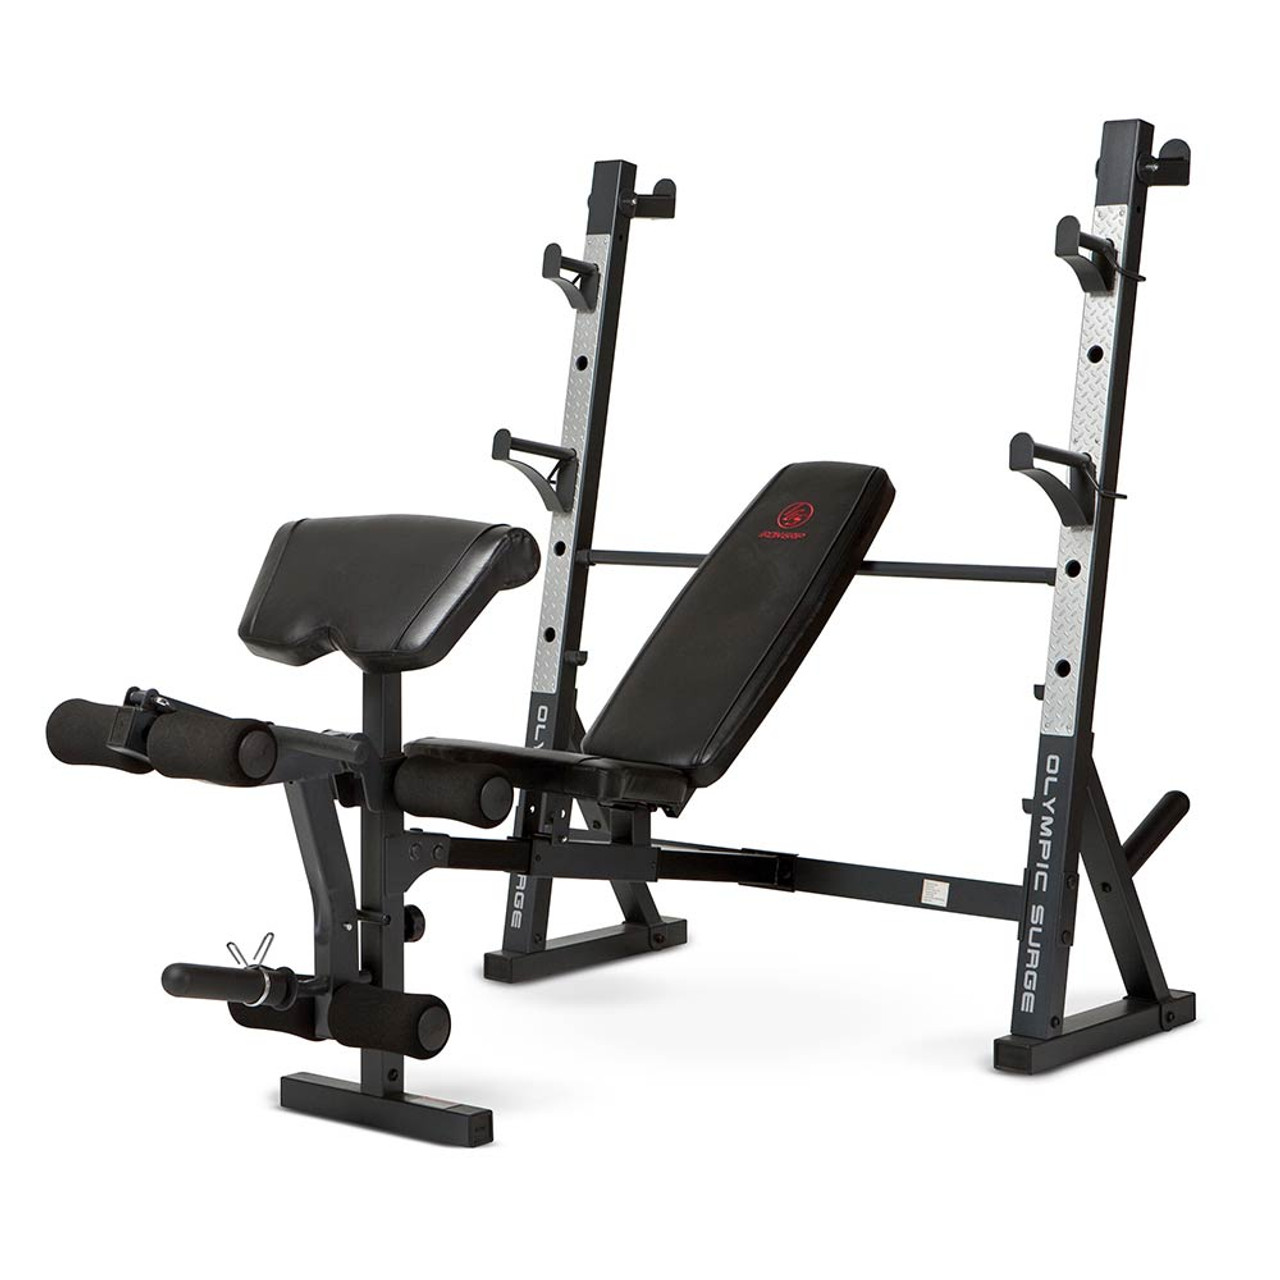 exercise bench dumbbell fitness factory xmark benches outlet weight weights xm from with adjustable